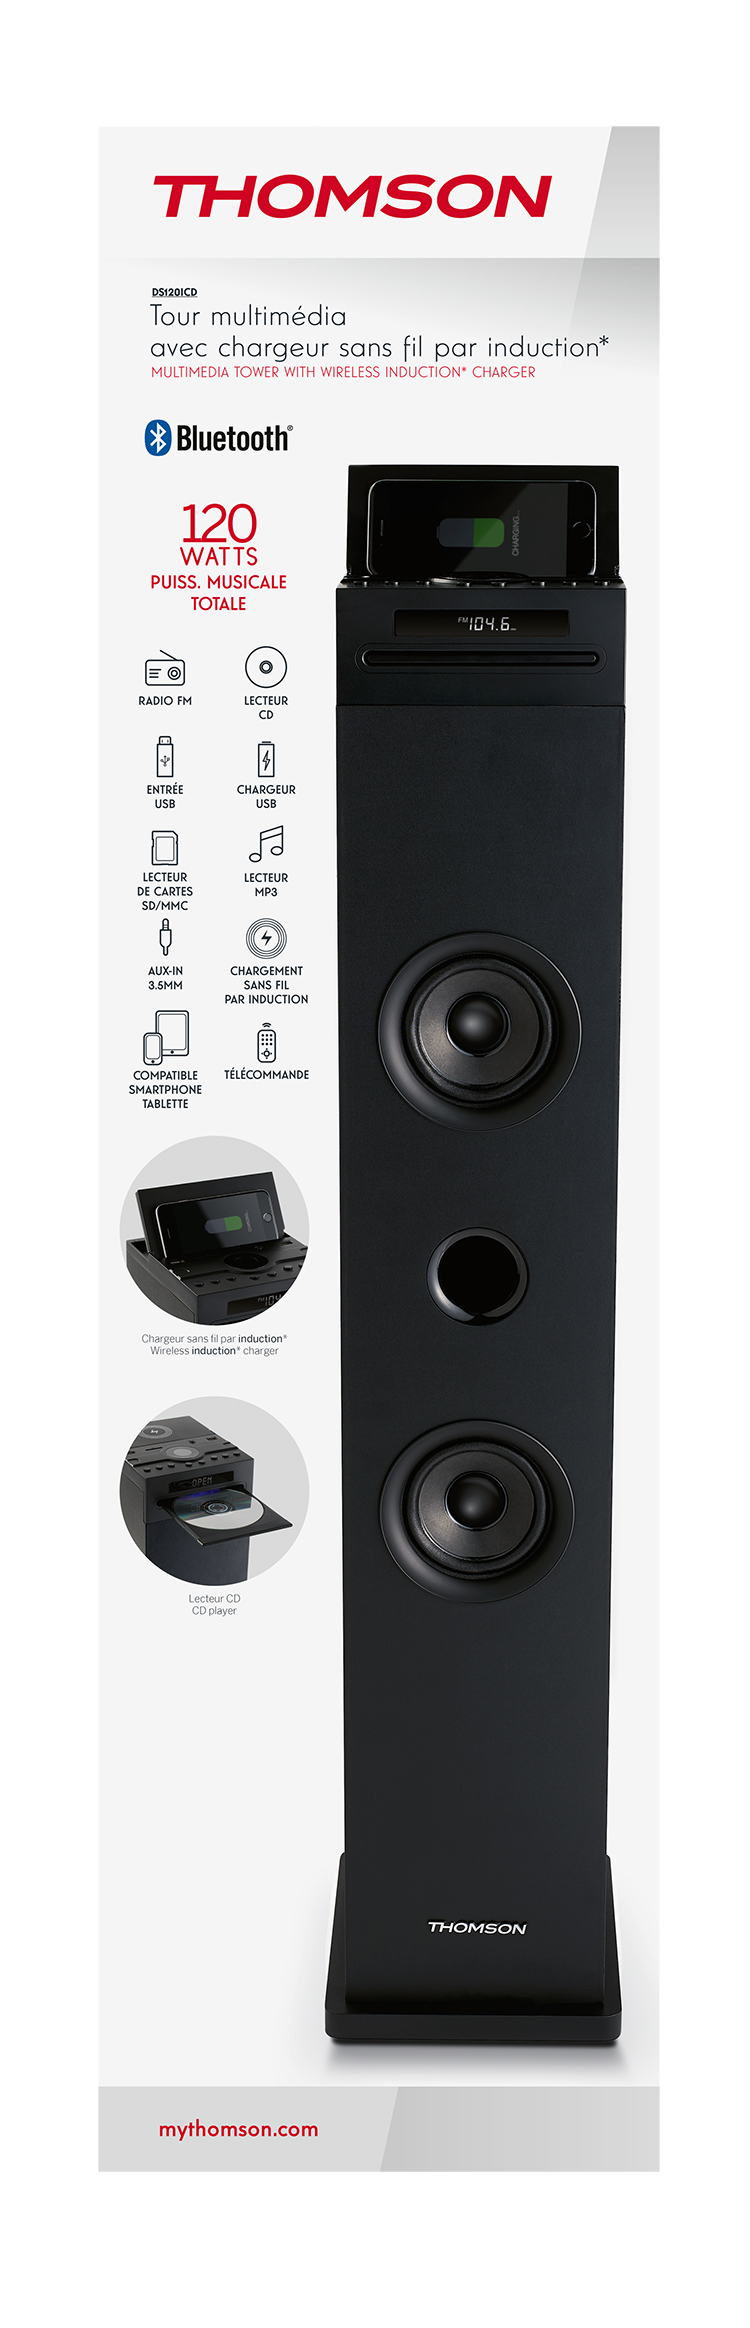 Multimedia tower with wireless charger DS120ICD THOMSON - Image  #2tutu#4tutu